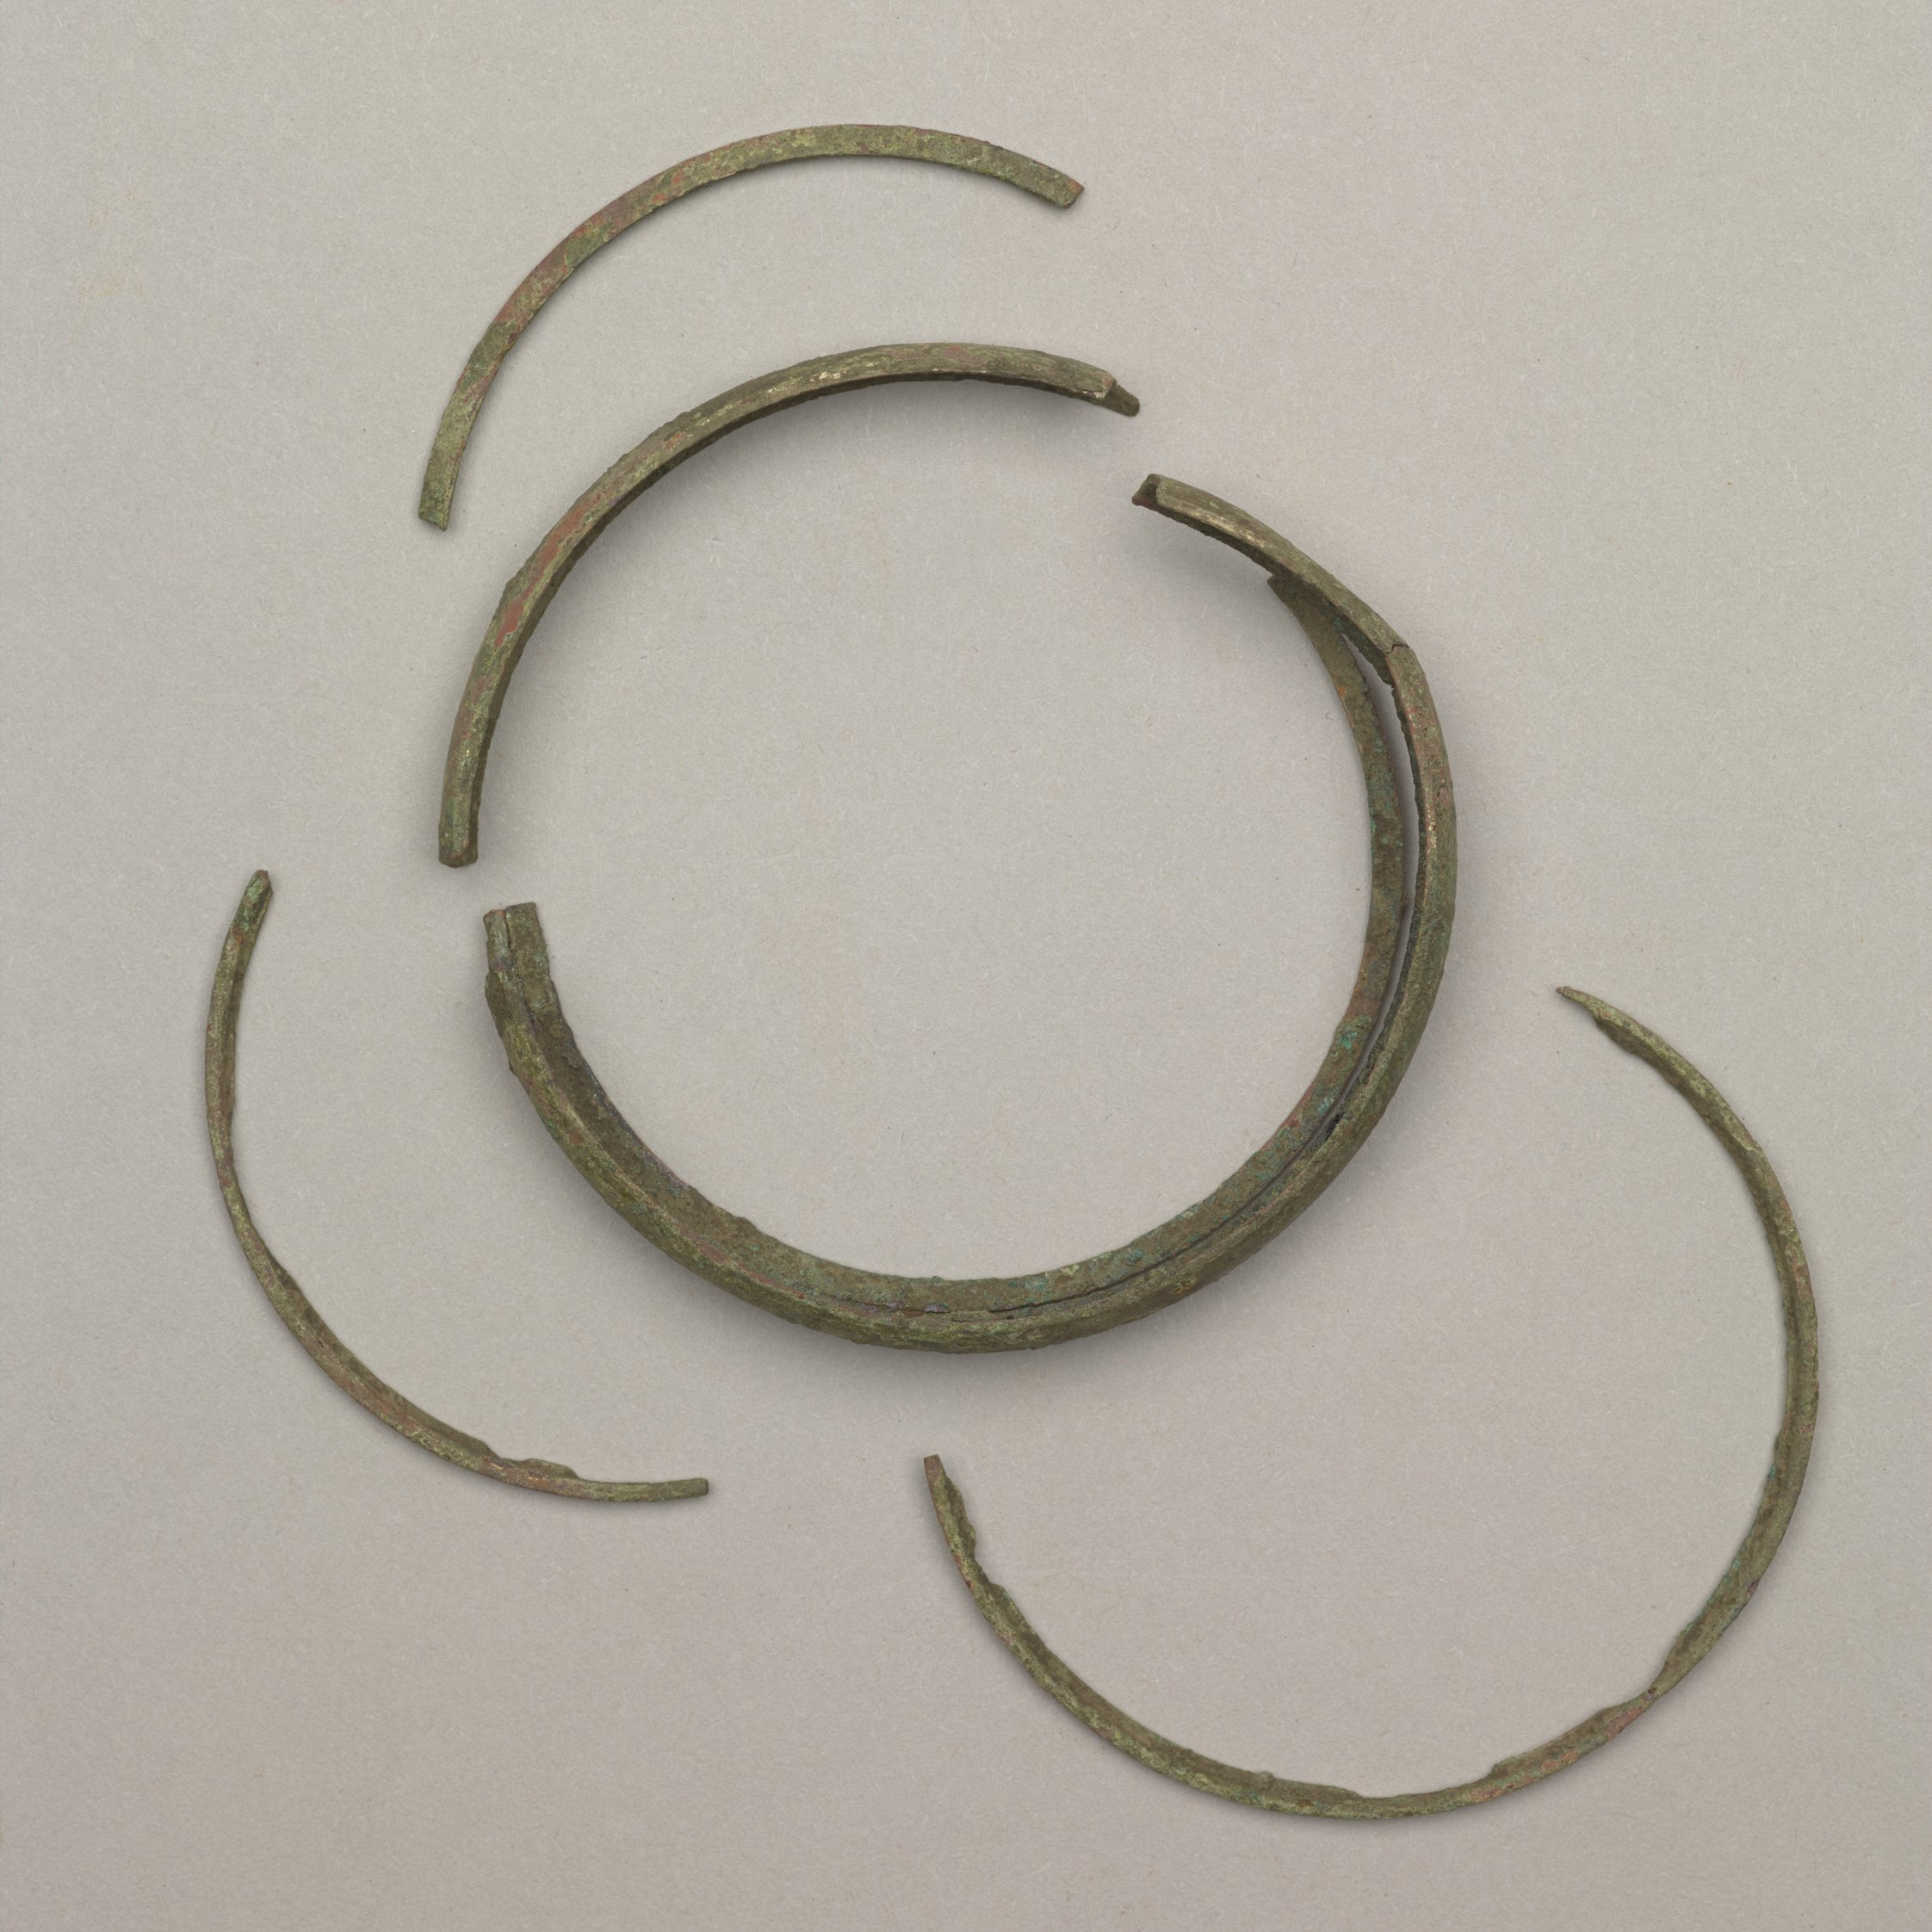 Brass Bracelet from the Mahaffie Farmstead and Stagecoach Stop, 14JO356 - 2